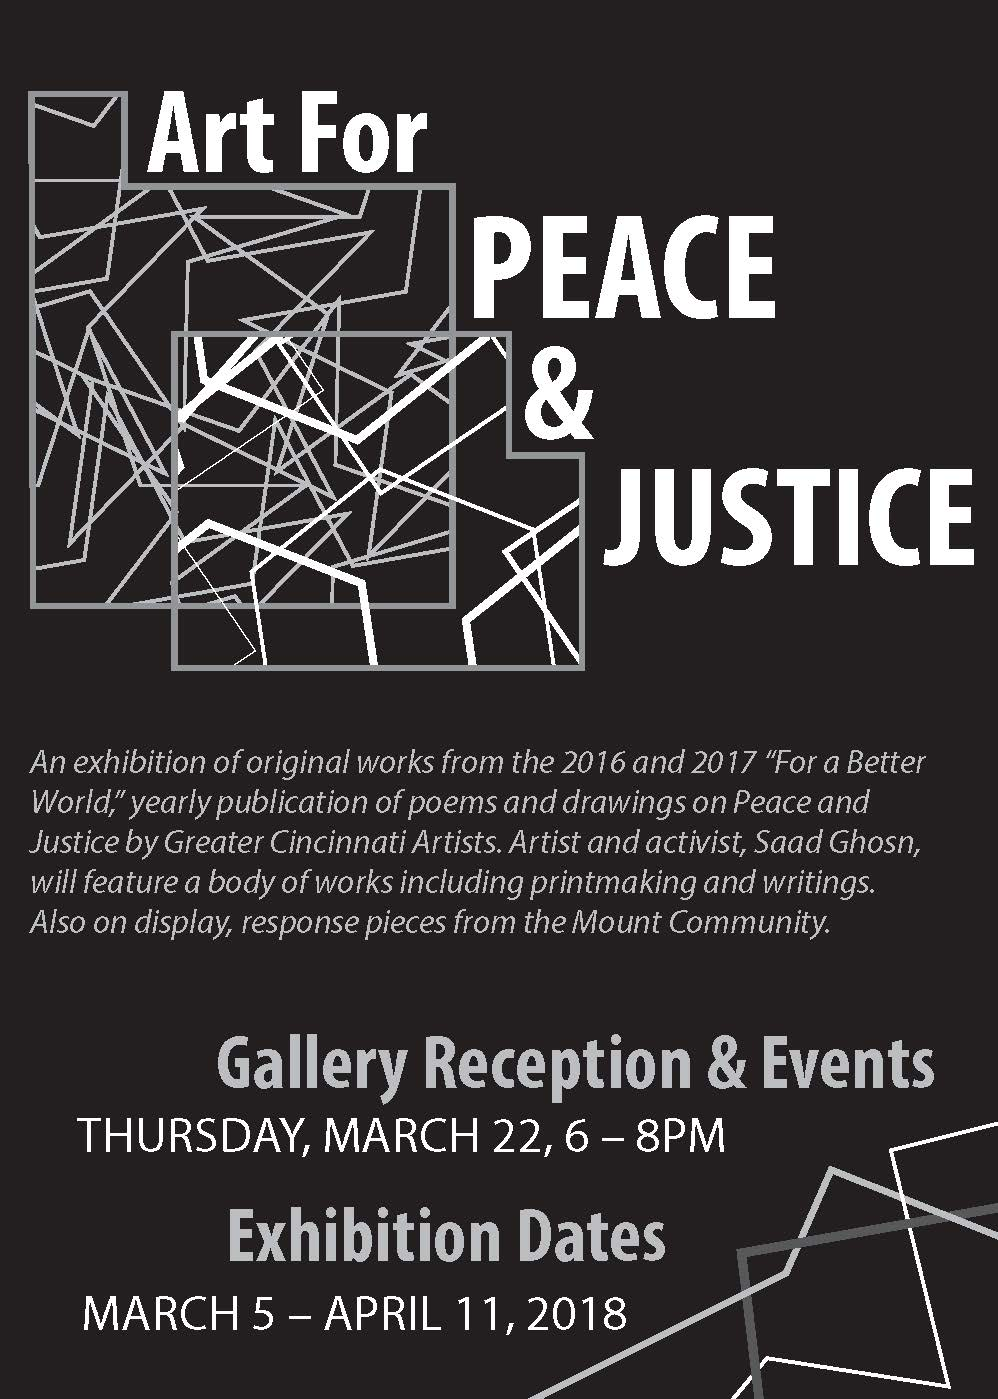 Art For Peace & Justice  Opening: March 22, 2018, 6 - 8pm March 5 - April 11, 2018 Studio San Giuseppe Art Gallery at Mount St. Joseph University  5701 Delhi Road Cincinnati, OH 45233